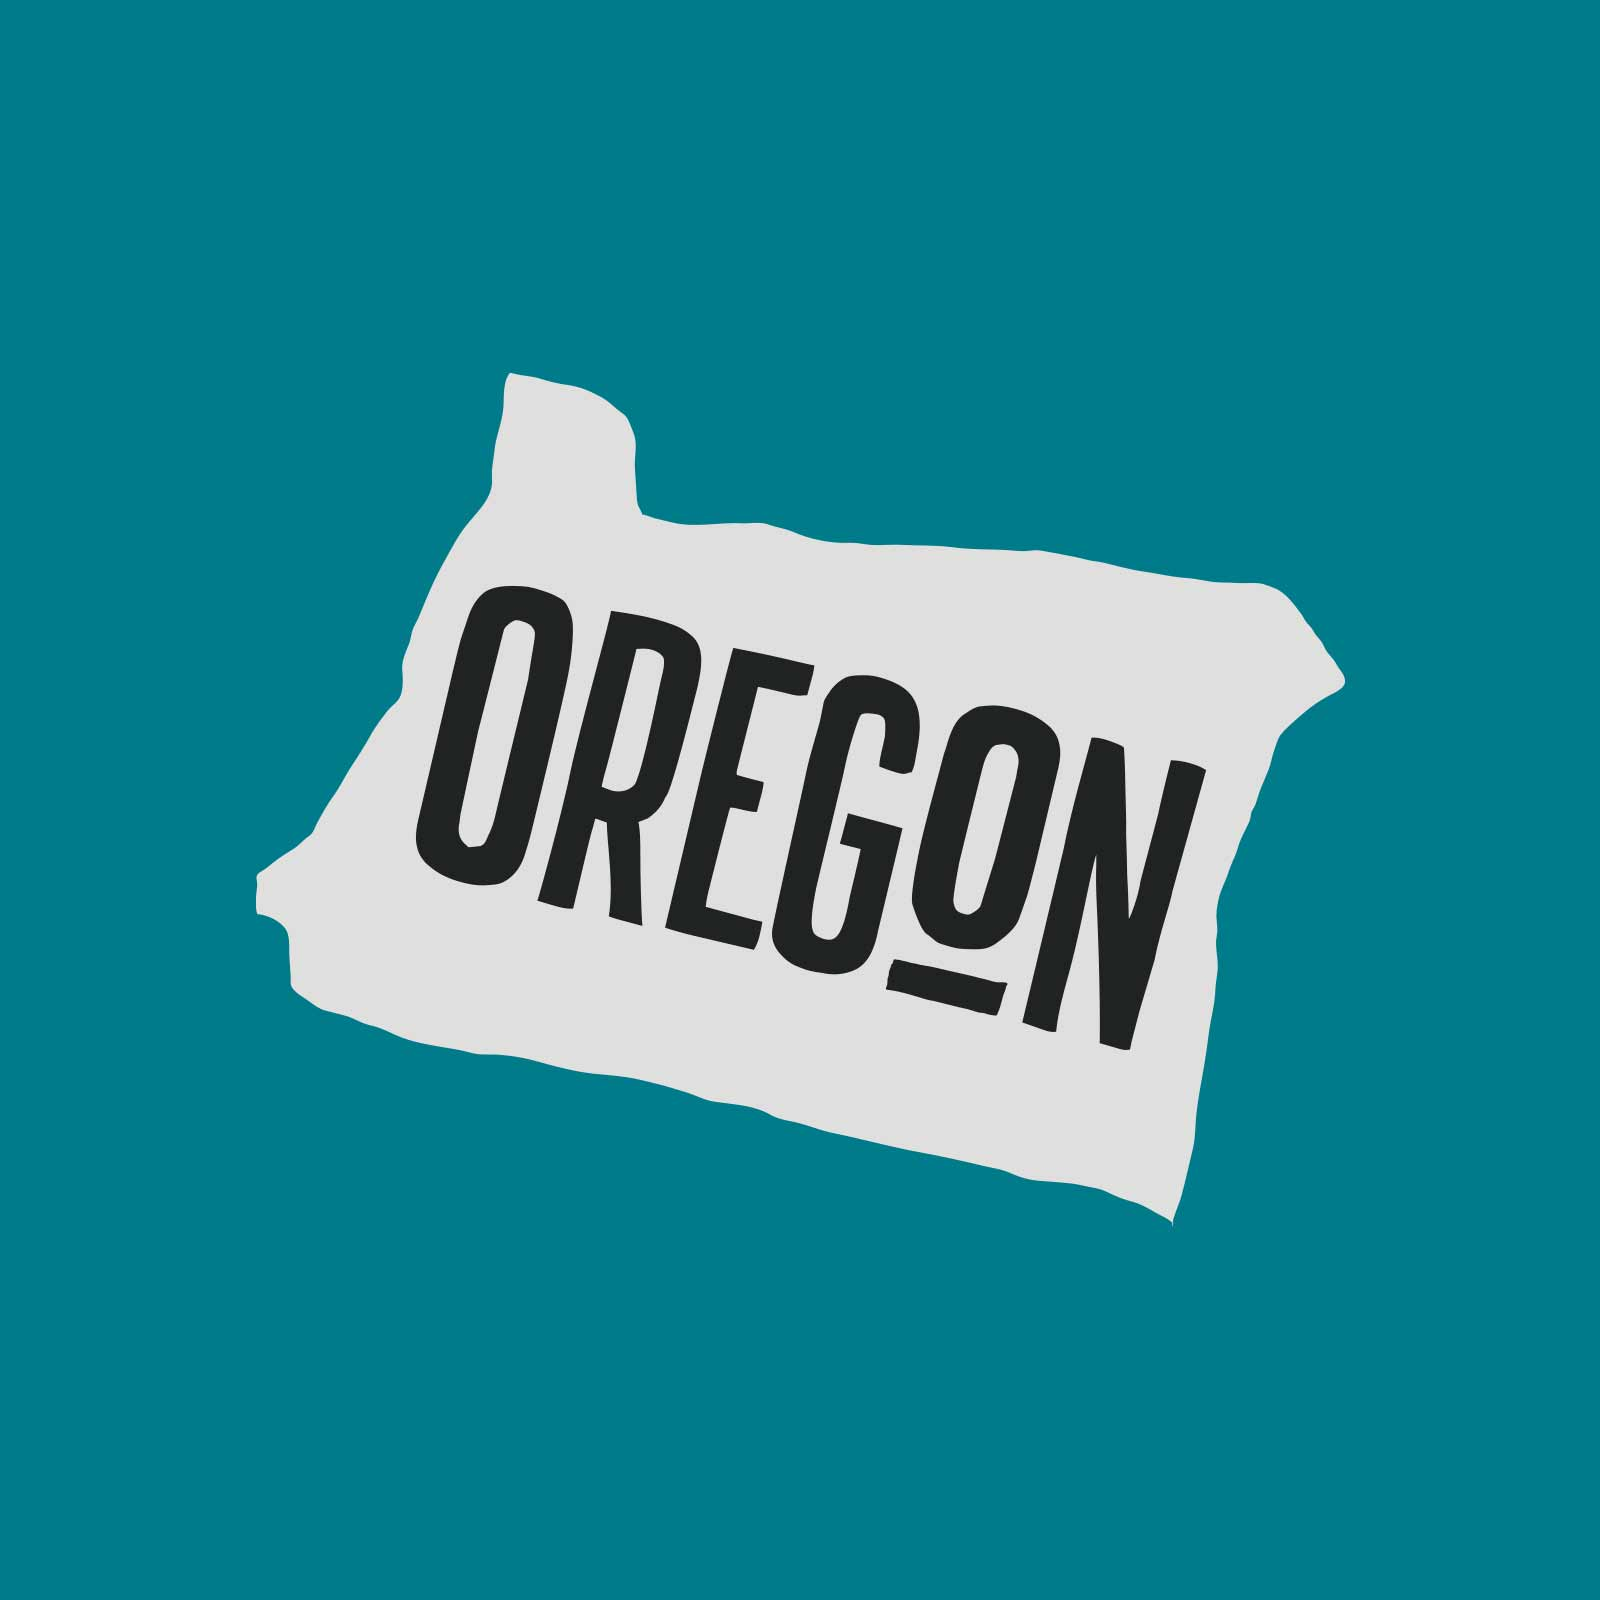 How to start a business in Oregon